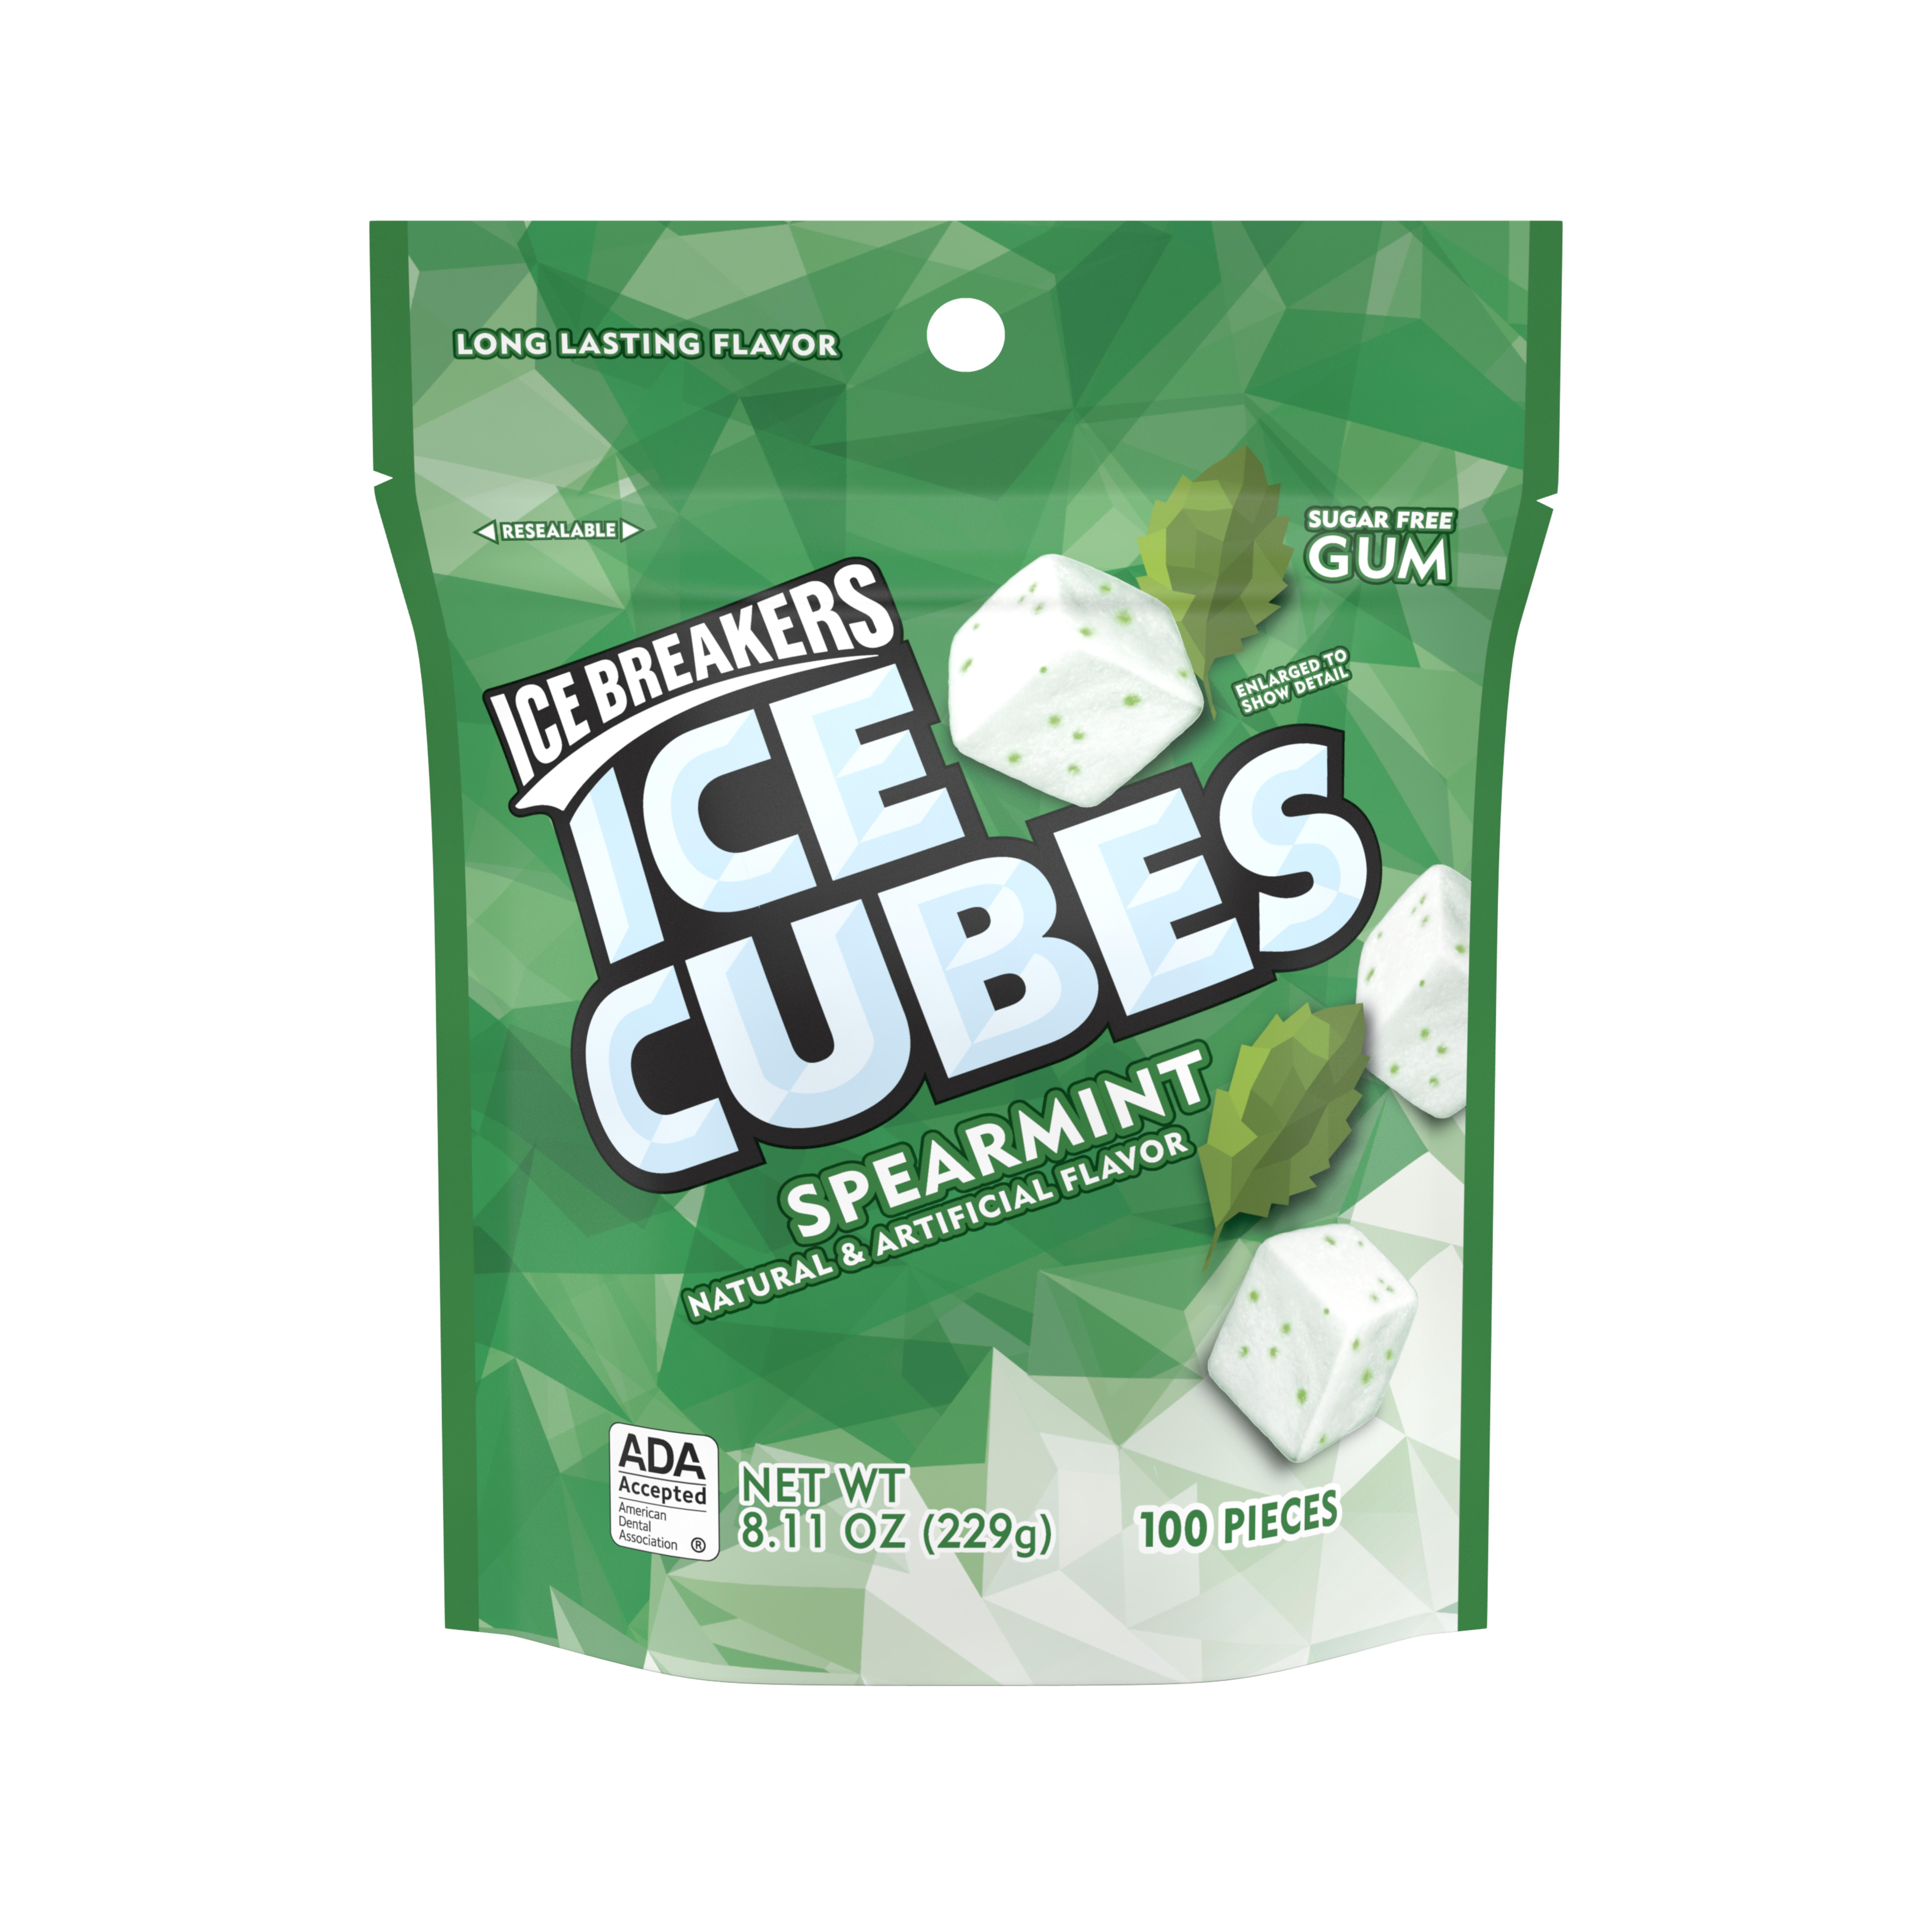 ICE BREAKERS ICE CUBES Sugar Free Spearmint Gum, 8.11 Ounces